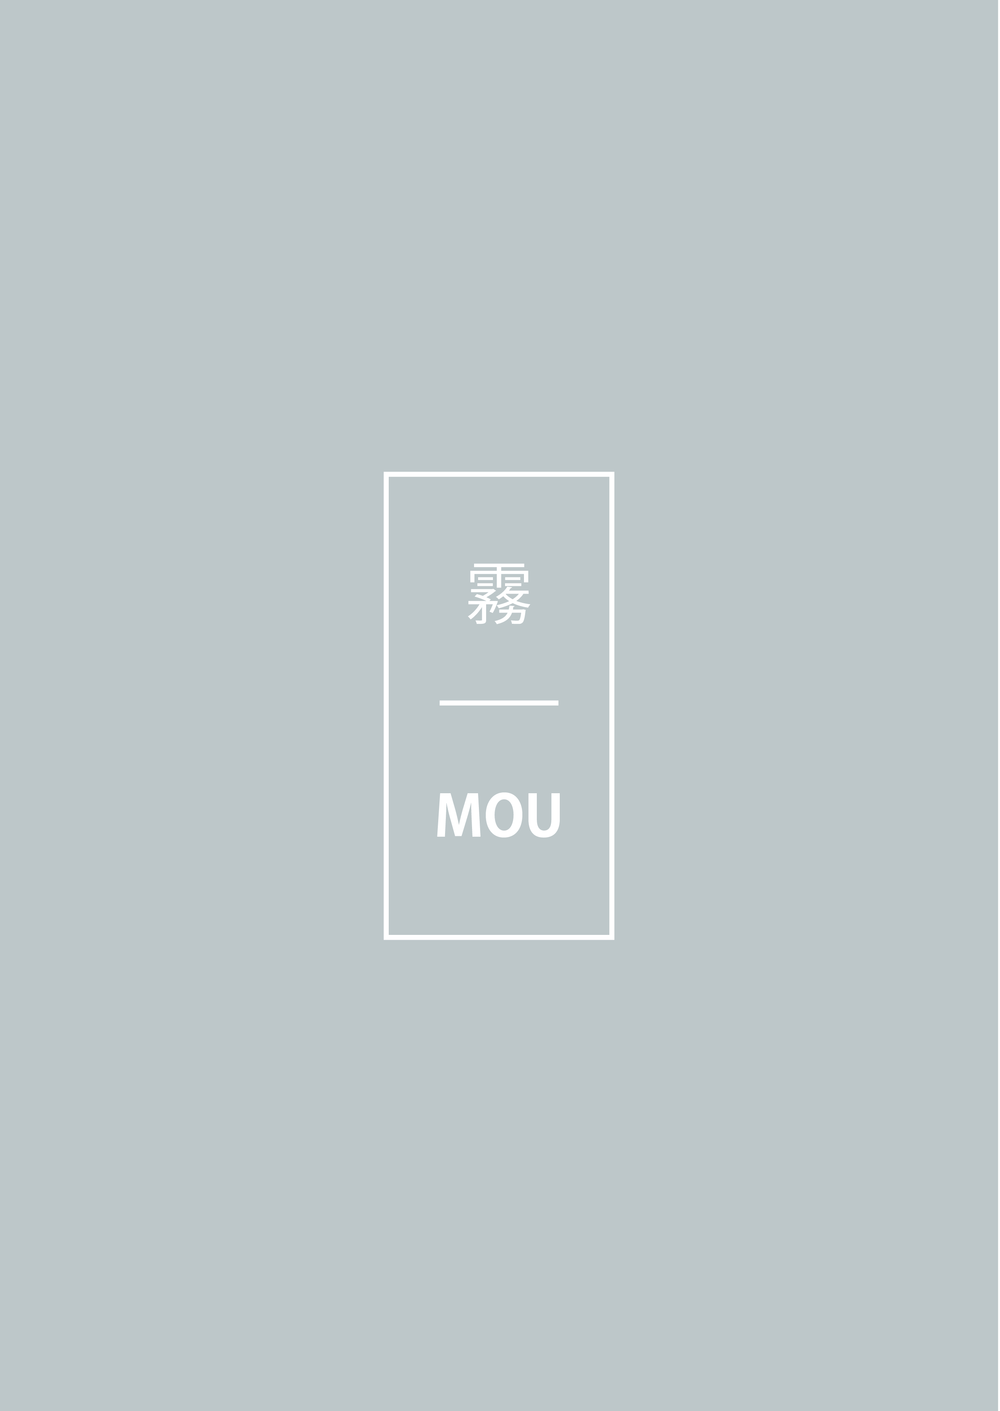 Salone 2015 Mou Press Kit